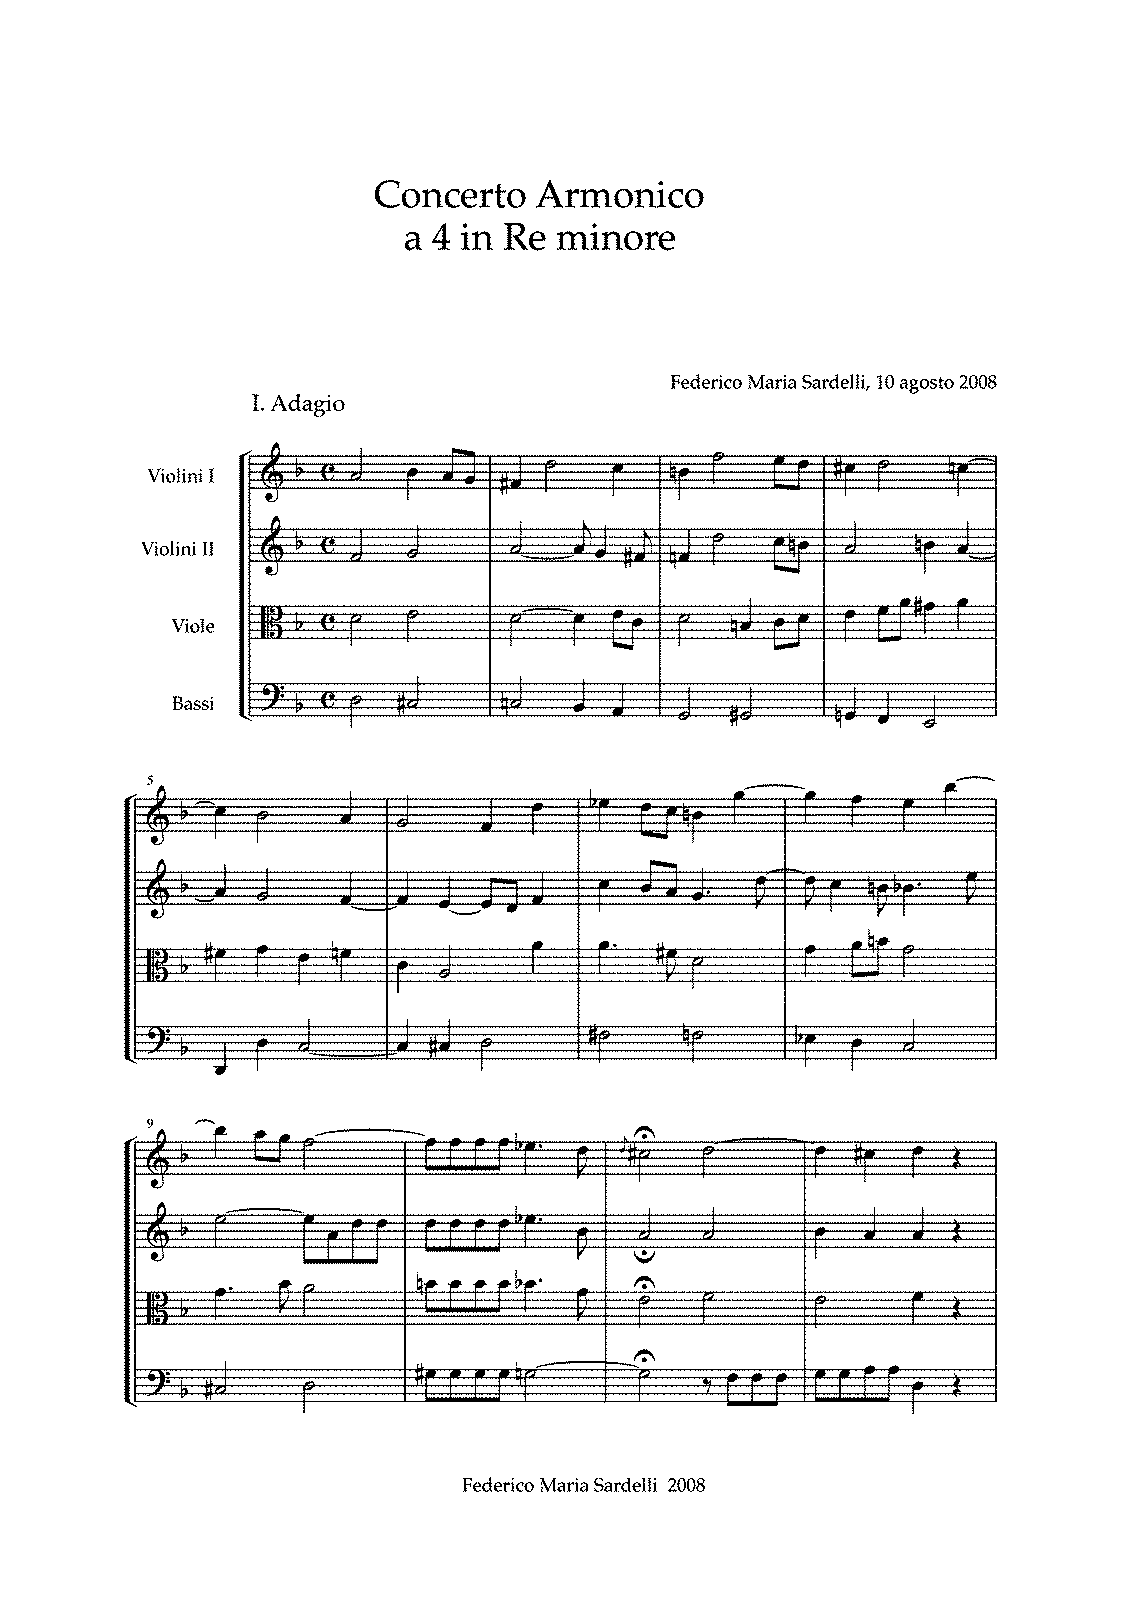 PMLP49806-Concerto in Re min.pdf